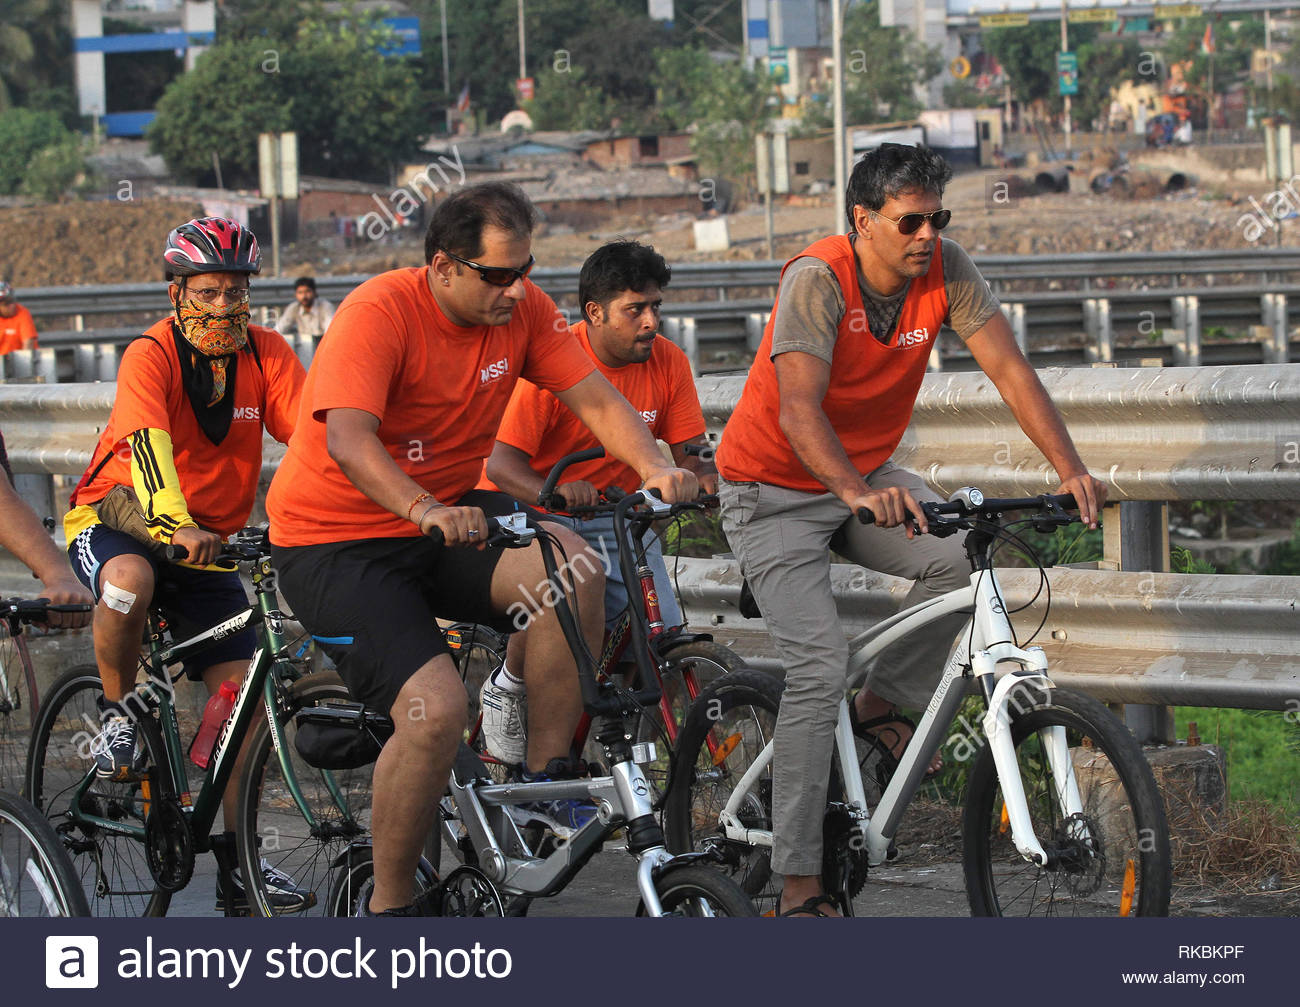 Bollywood actor and model Milind Soman participates in a bicycle rally to raise awareness about Multiple Sclerosis in Mumbai, India on May 26, 2013. (Shailesh Andrade / SOLARIS IMAGES) - Stock Image